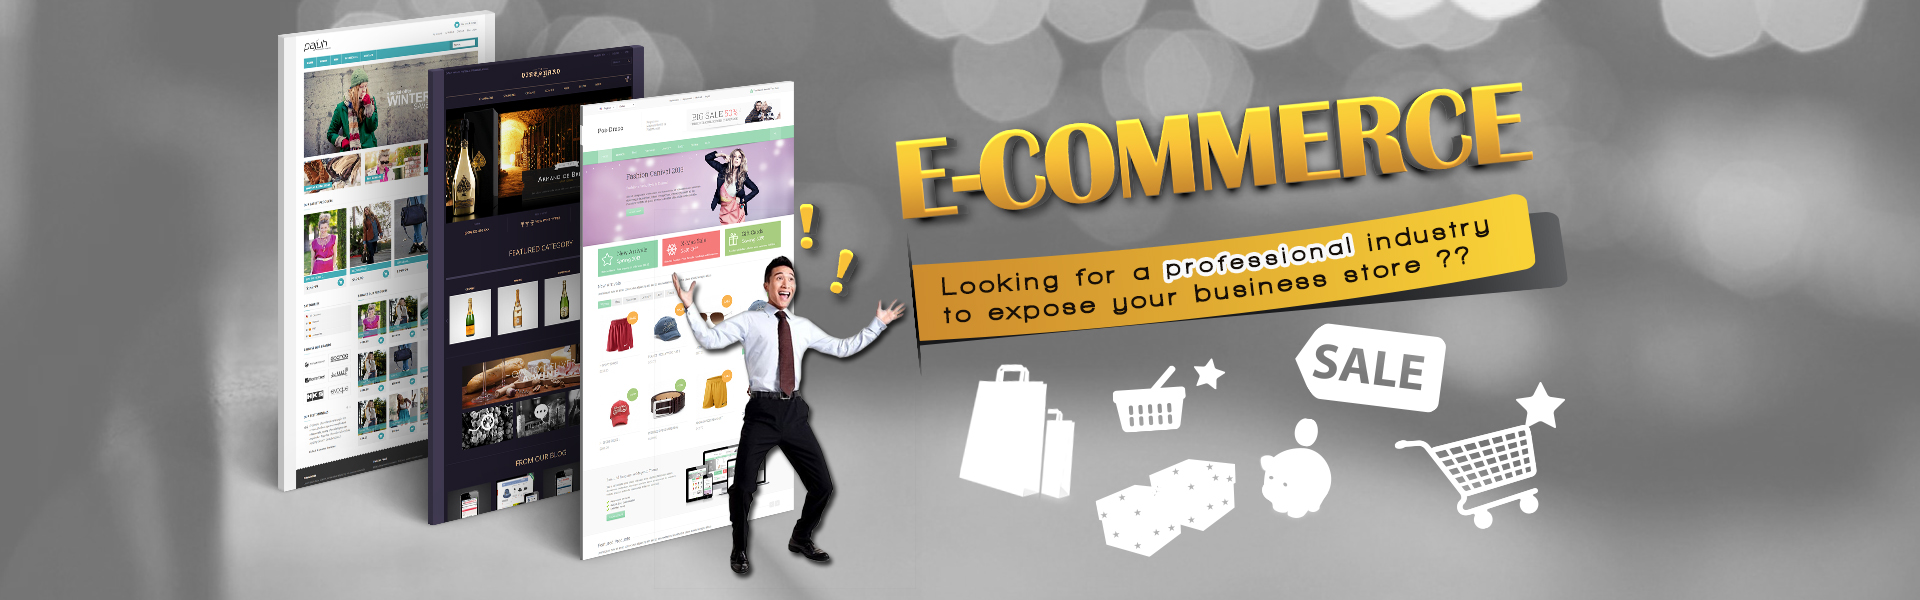 e-commerce-lawaweb-banner-1